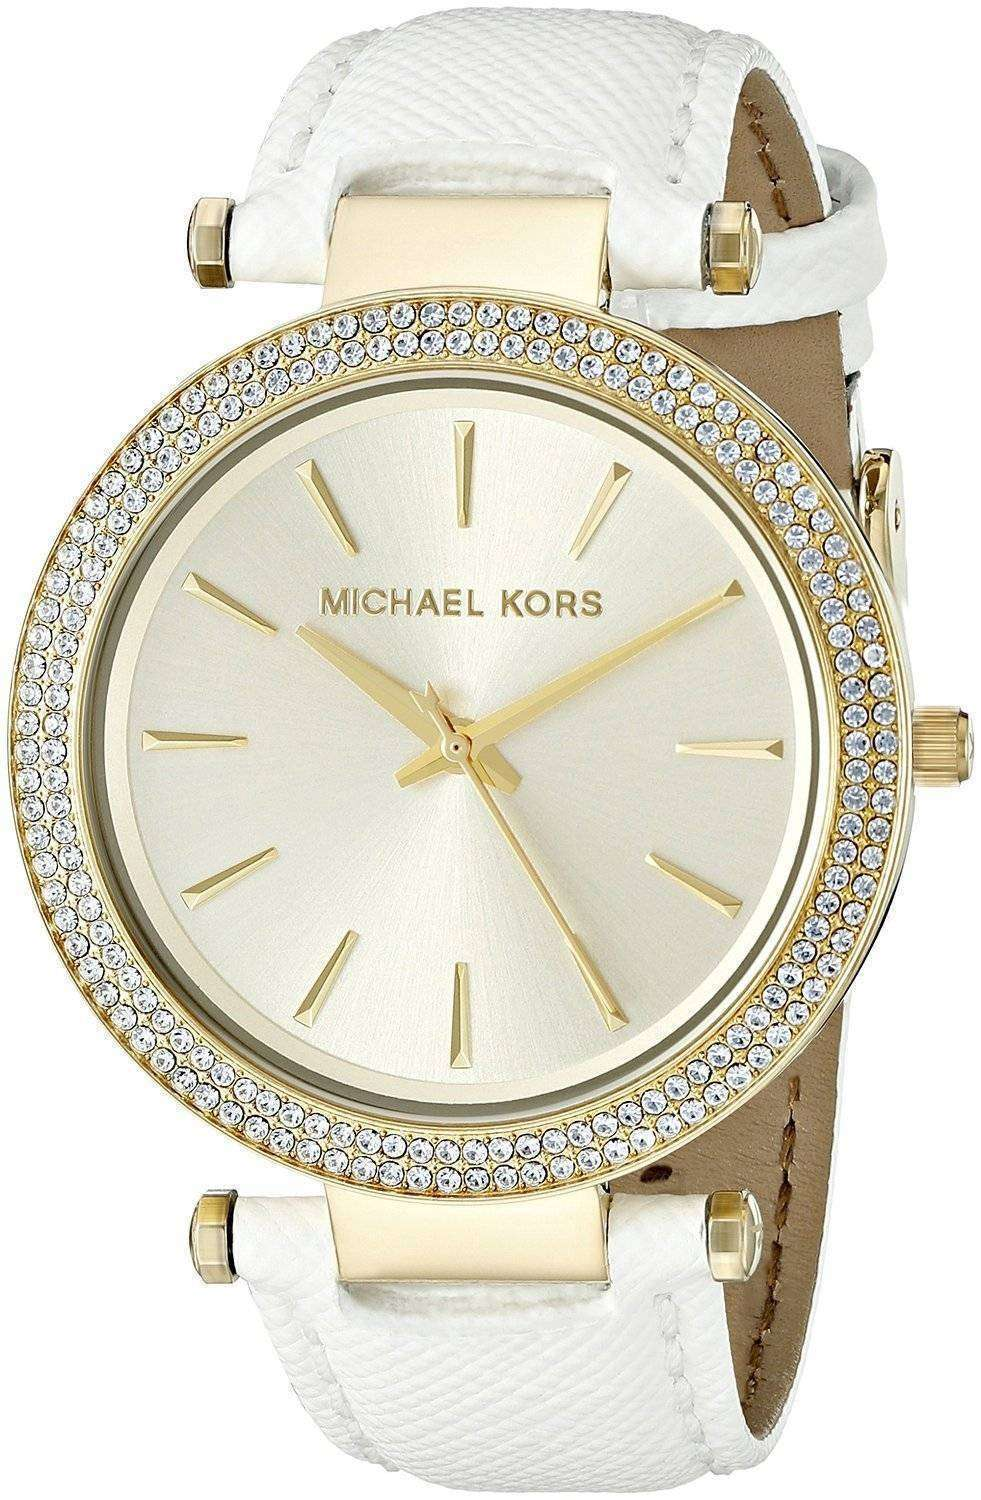 333a5f7a86ce Michael Kors Darci Champagne Dial MK2391 Womens Watch - CityWatches.ie